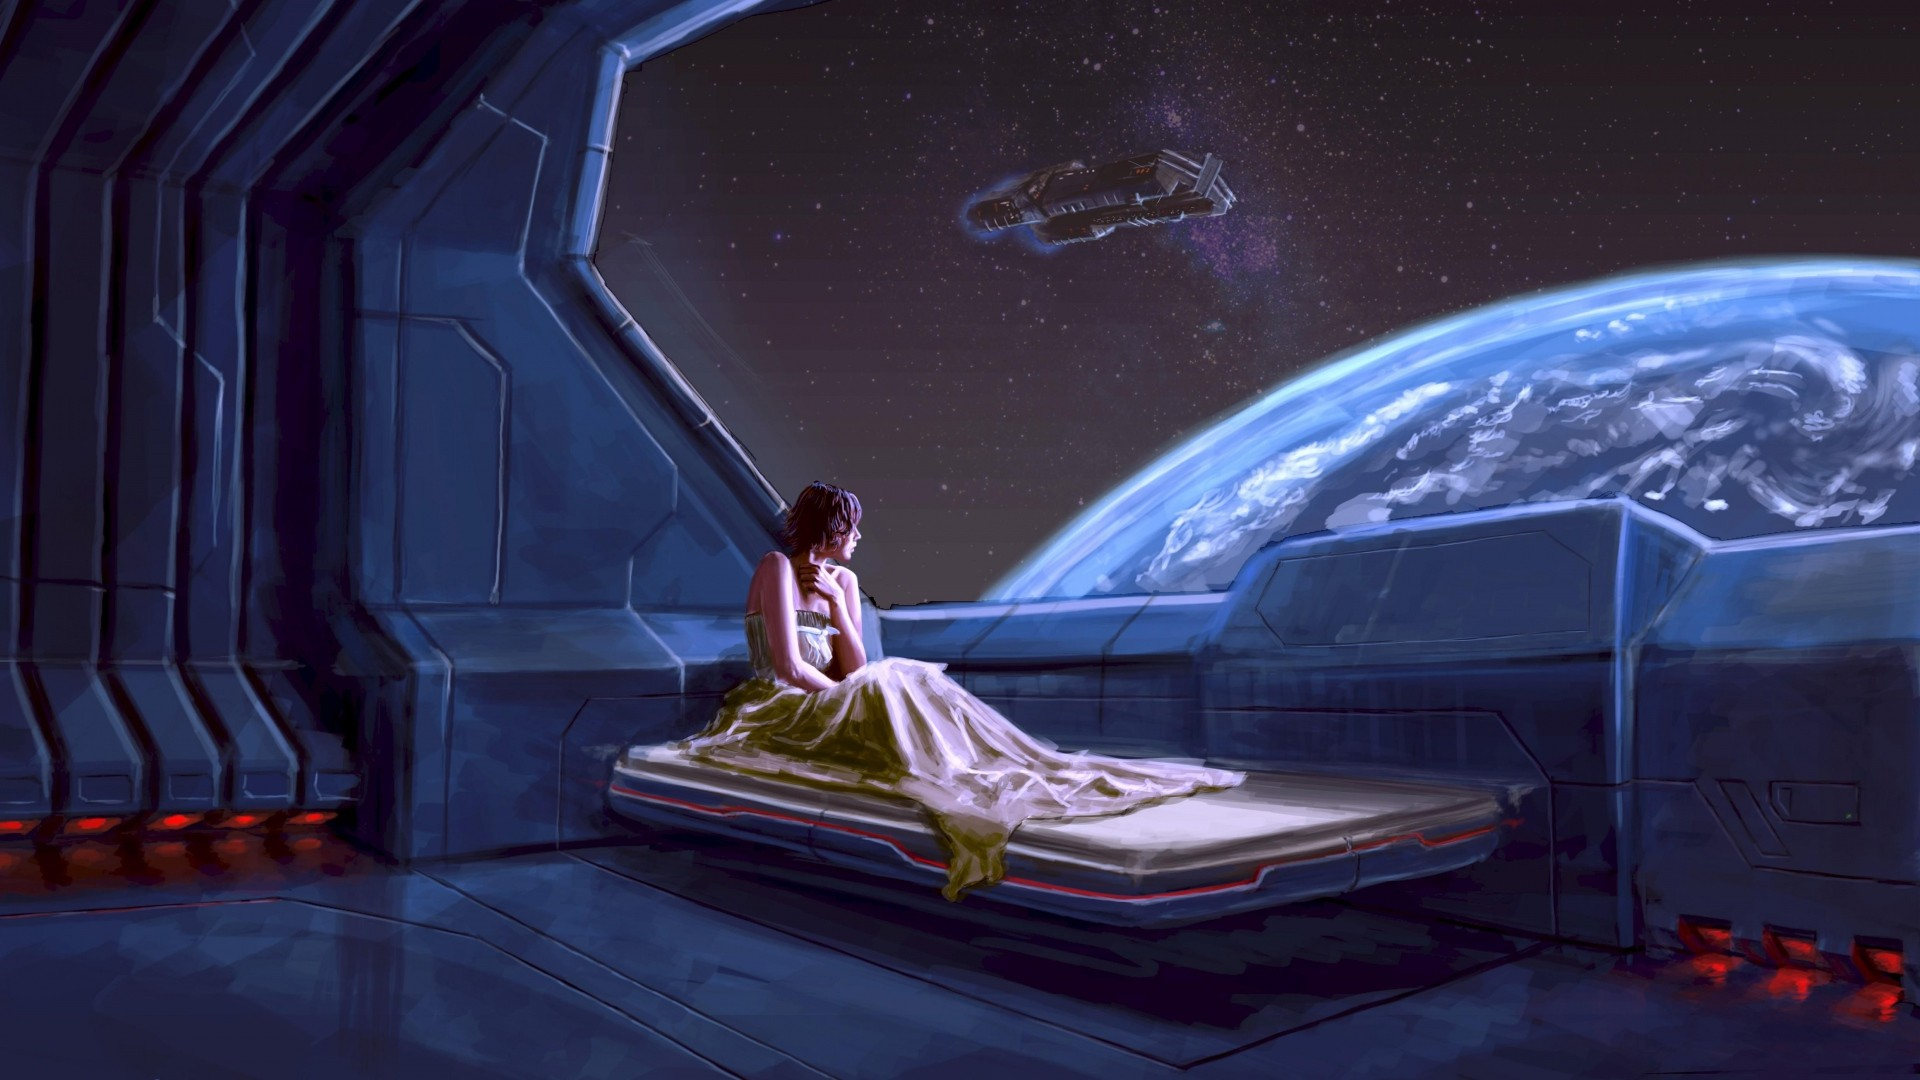 General 1920x1080 women bed galaxy space Earth spaceship